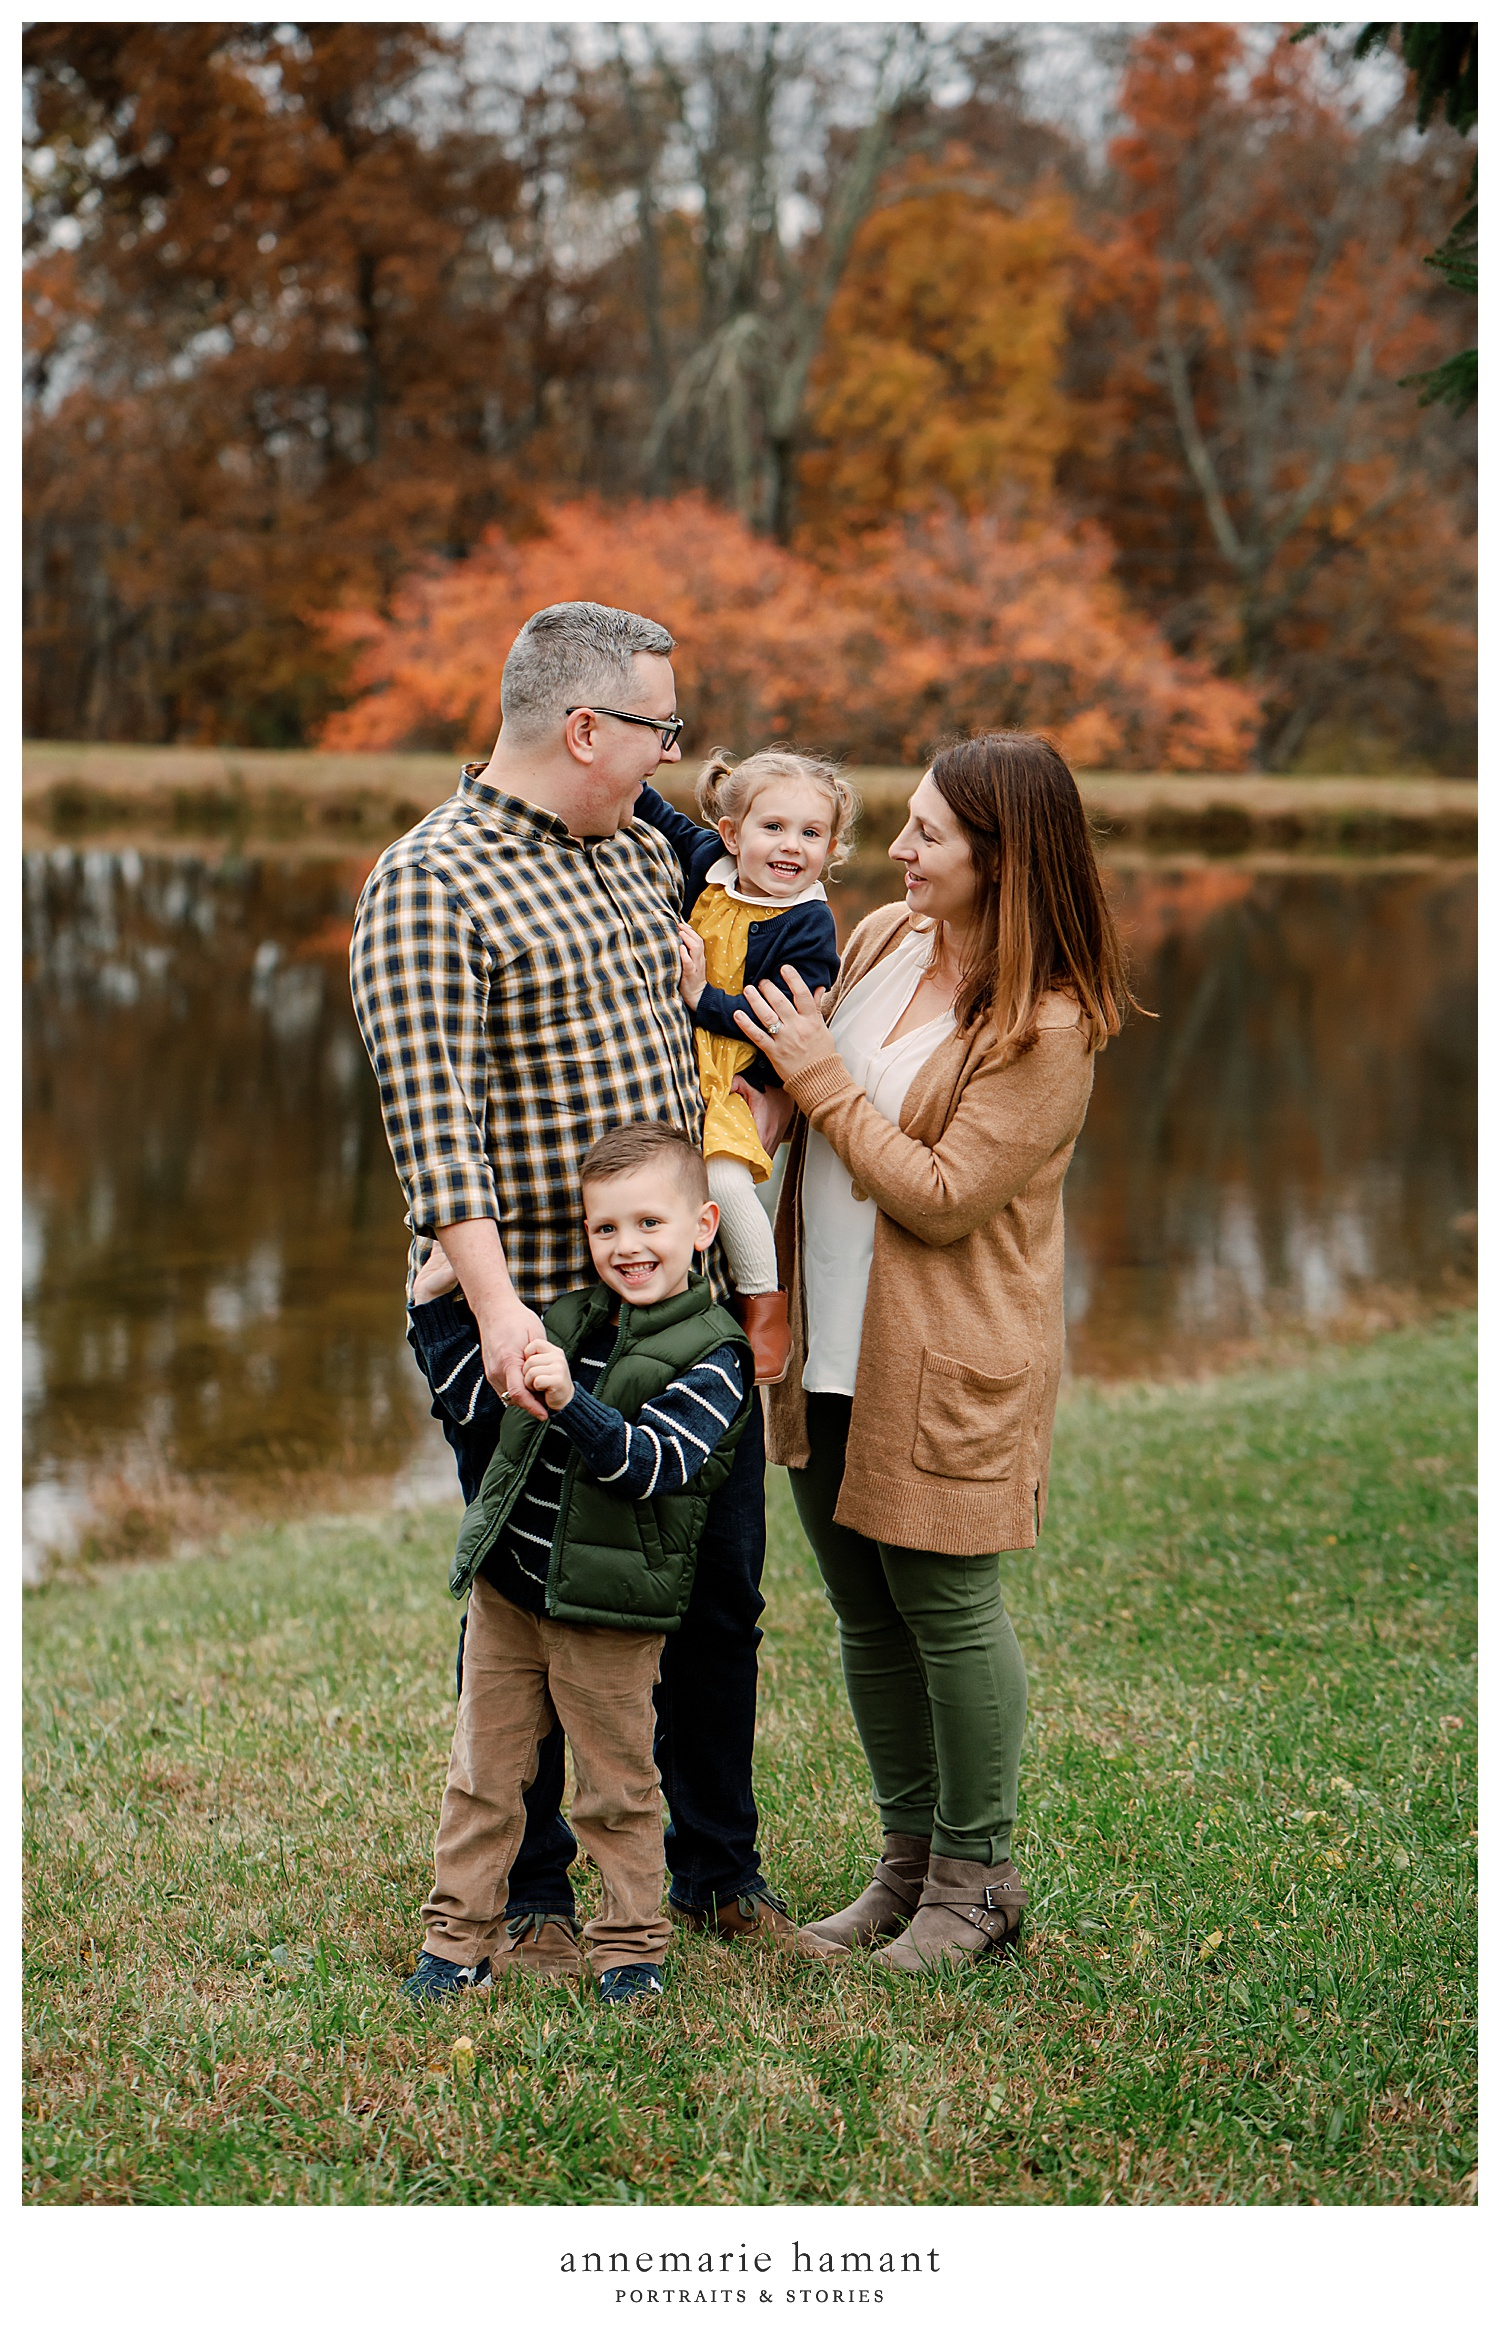 AnneMarie Hamant is an award-winning family photographer based in the Lehigh Valley PA. Her rich tones and candid, playful approach to photography create timeless and natural images of your family.